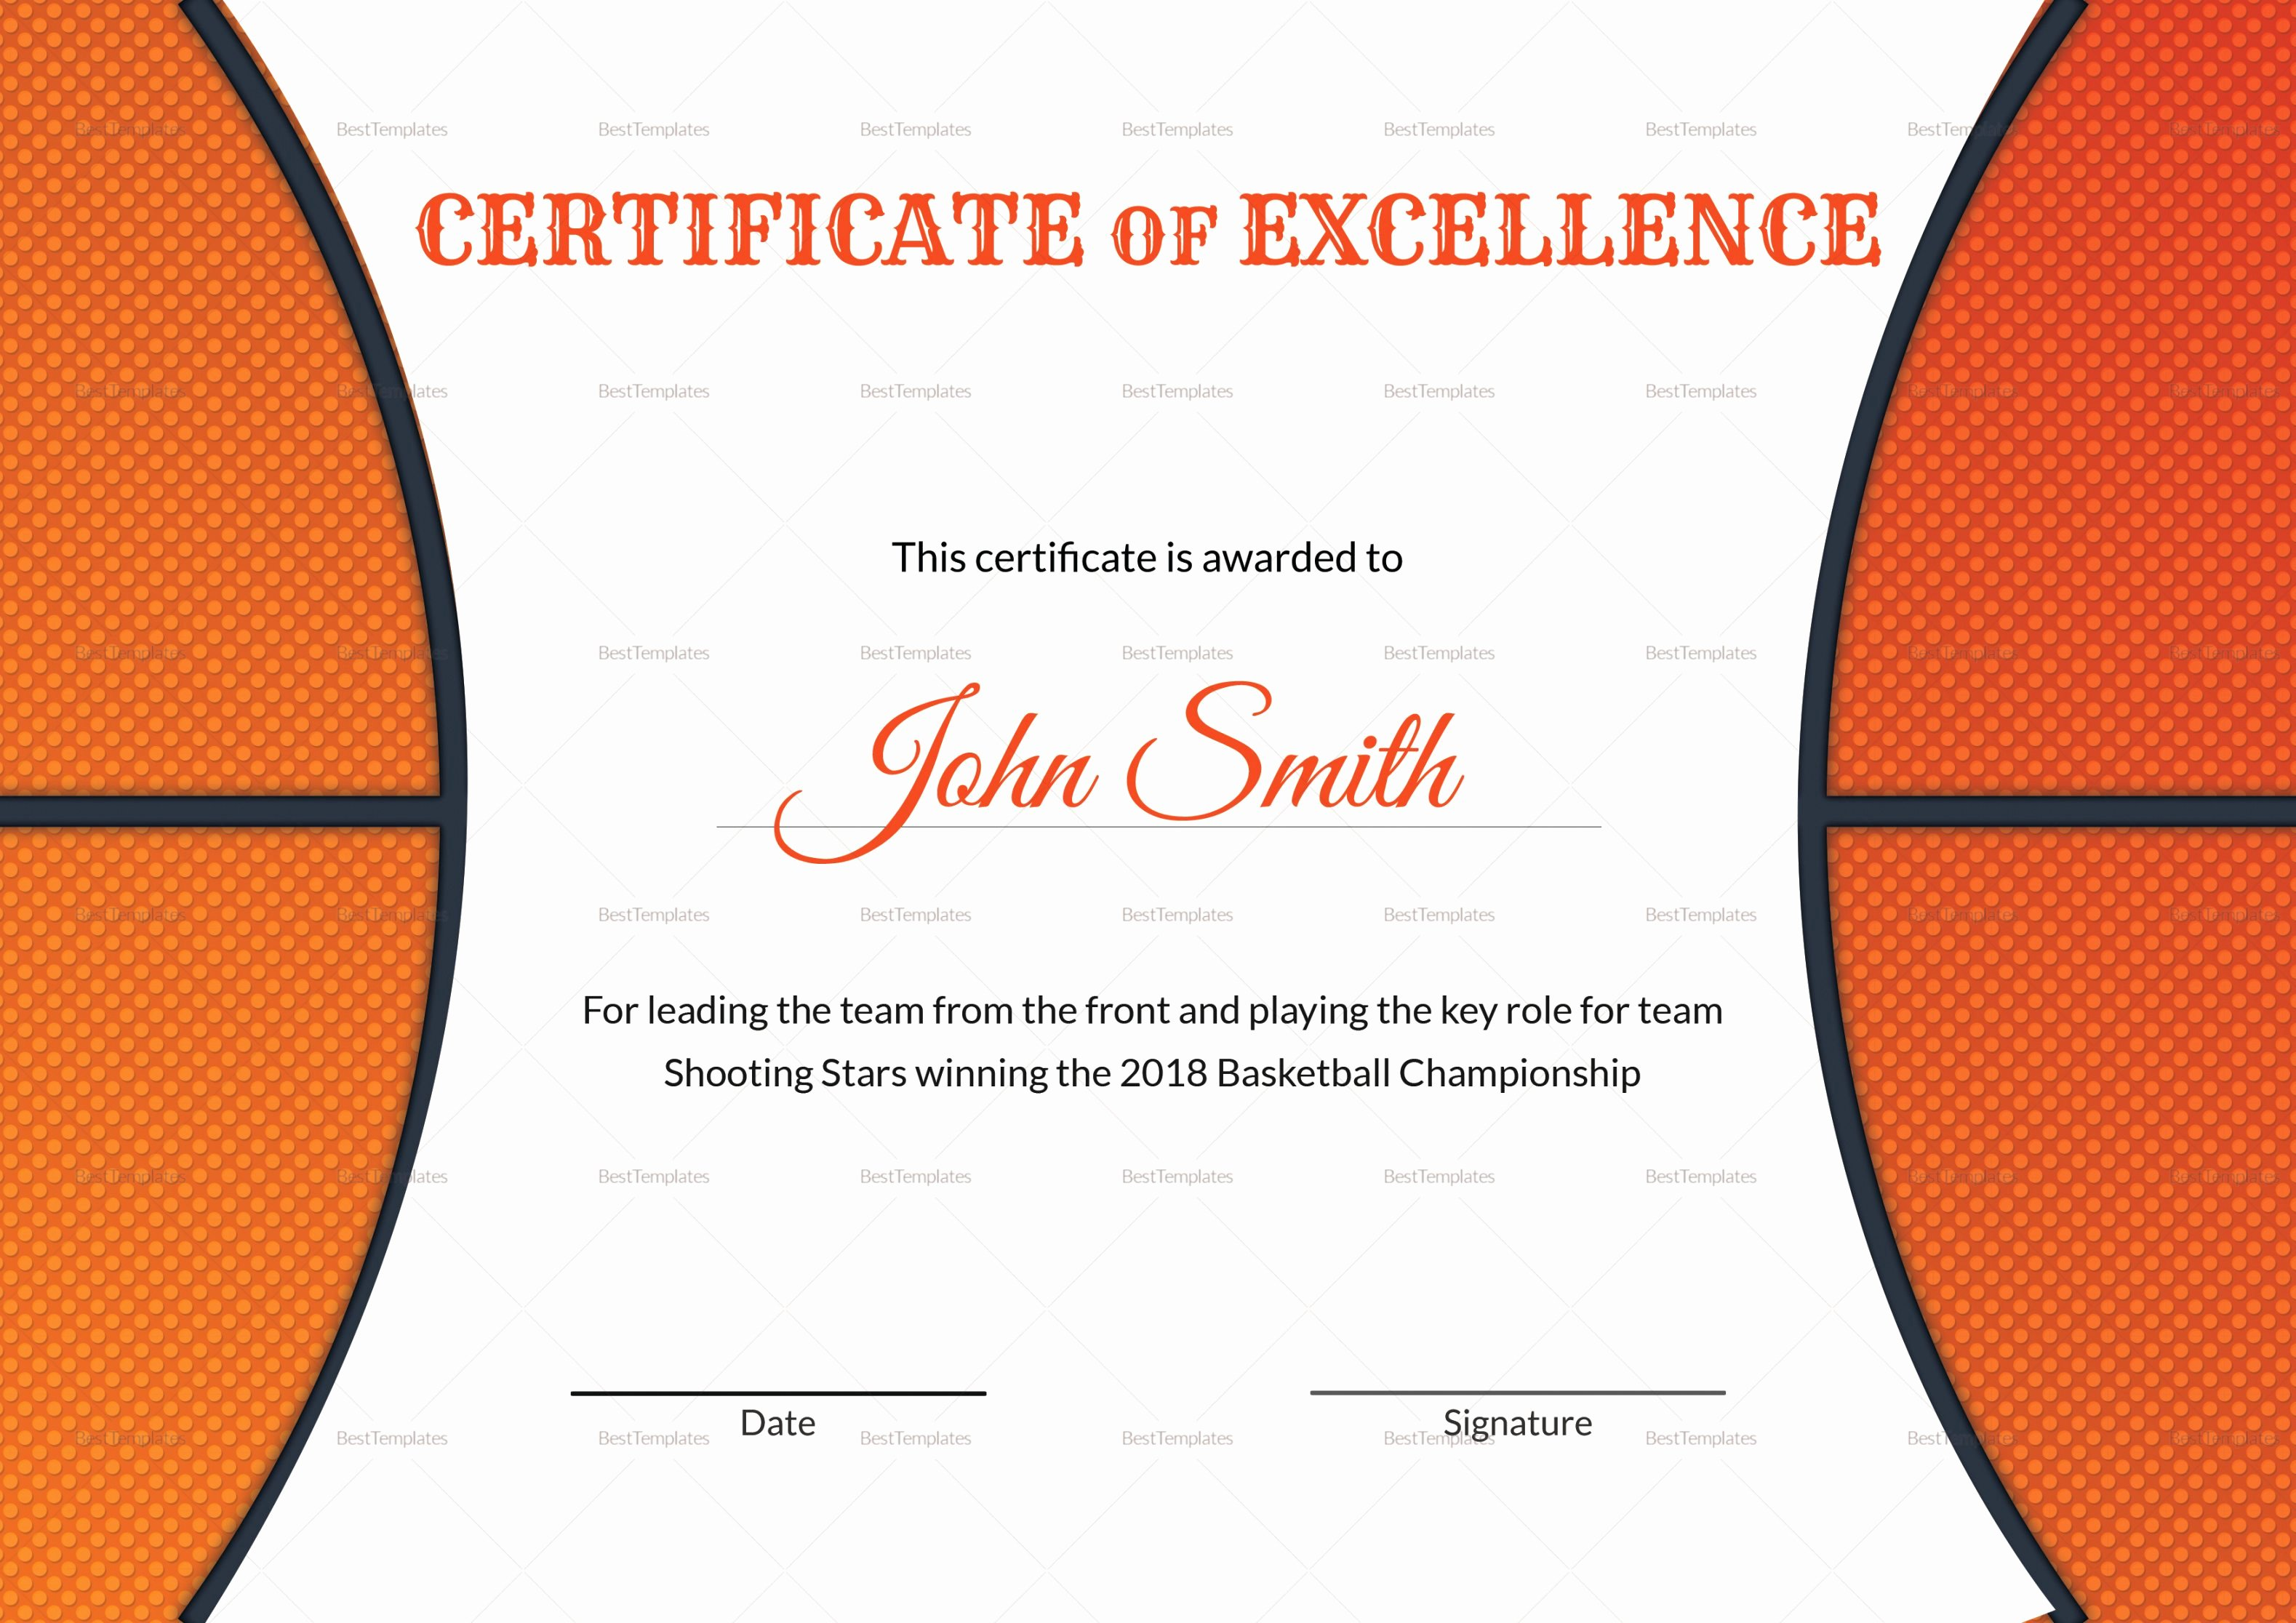 Certificate Of Excellence Template Word Unique Basketball Excellence Award Certificate Design Template In